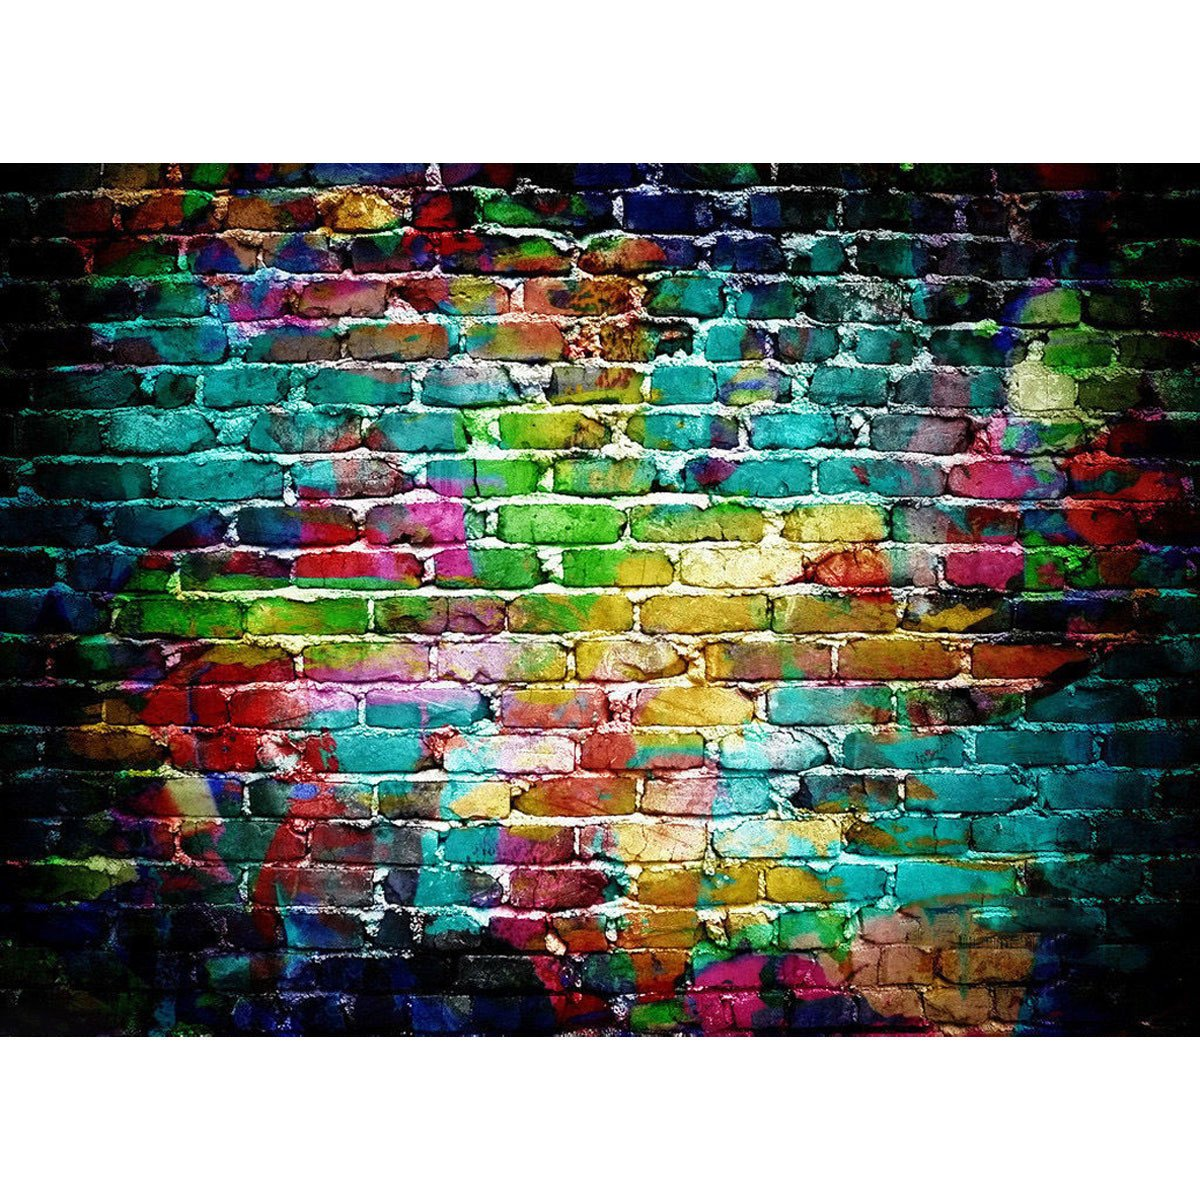 Mohoo 7x5ft colorful brick wall silk photography backdrop for studio prop photo background 2 1x1